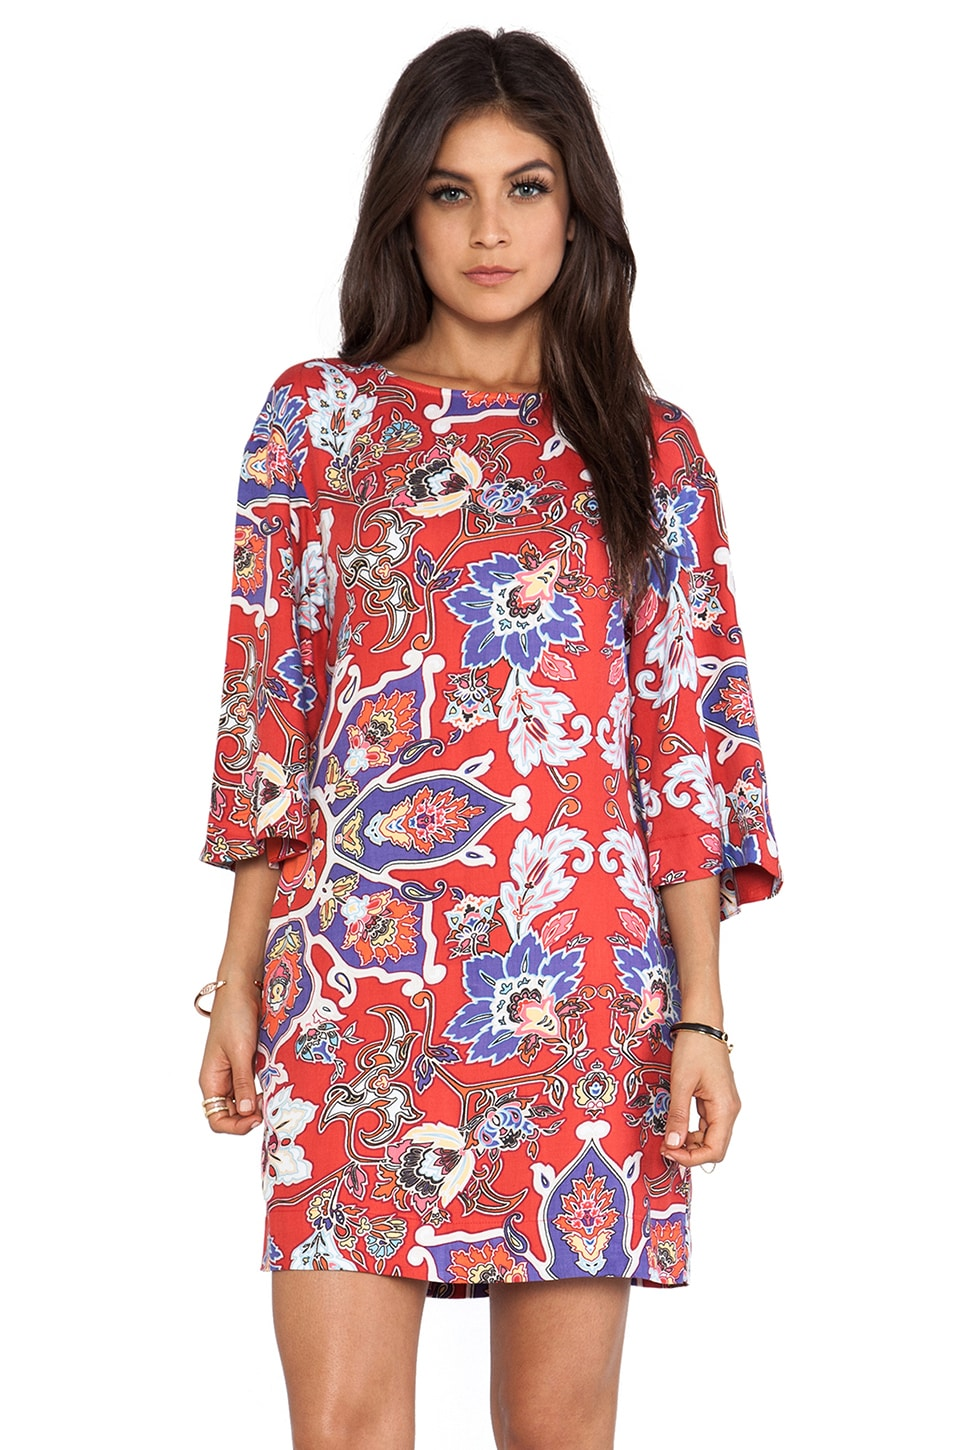 Shona Joy New Perspective Bell Sleeve Shift Dress in Multi